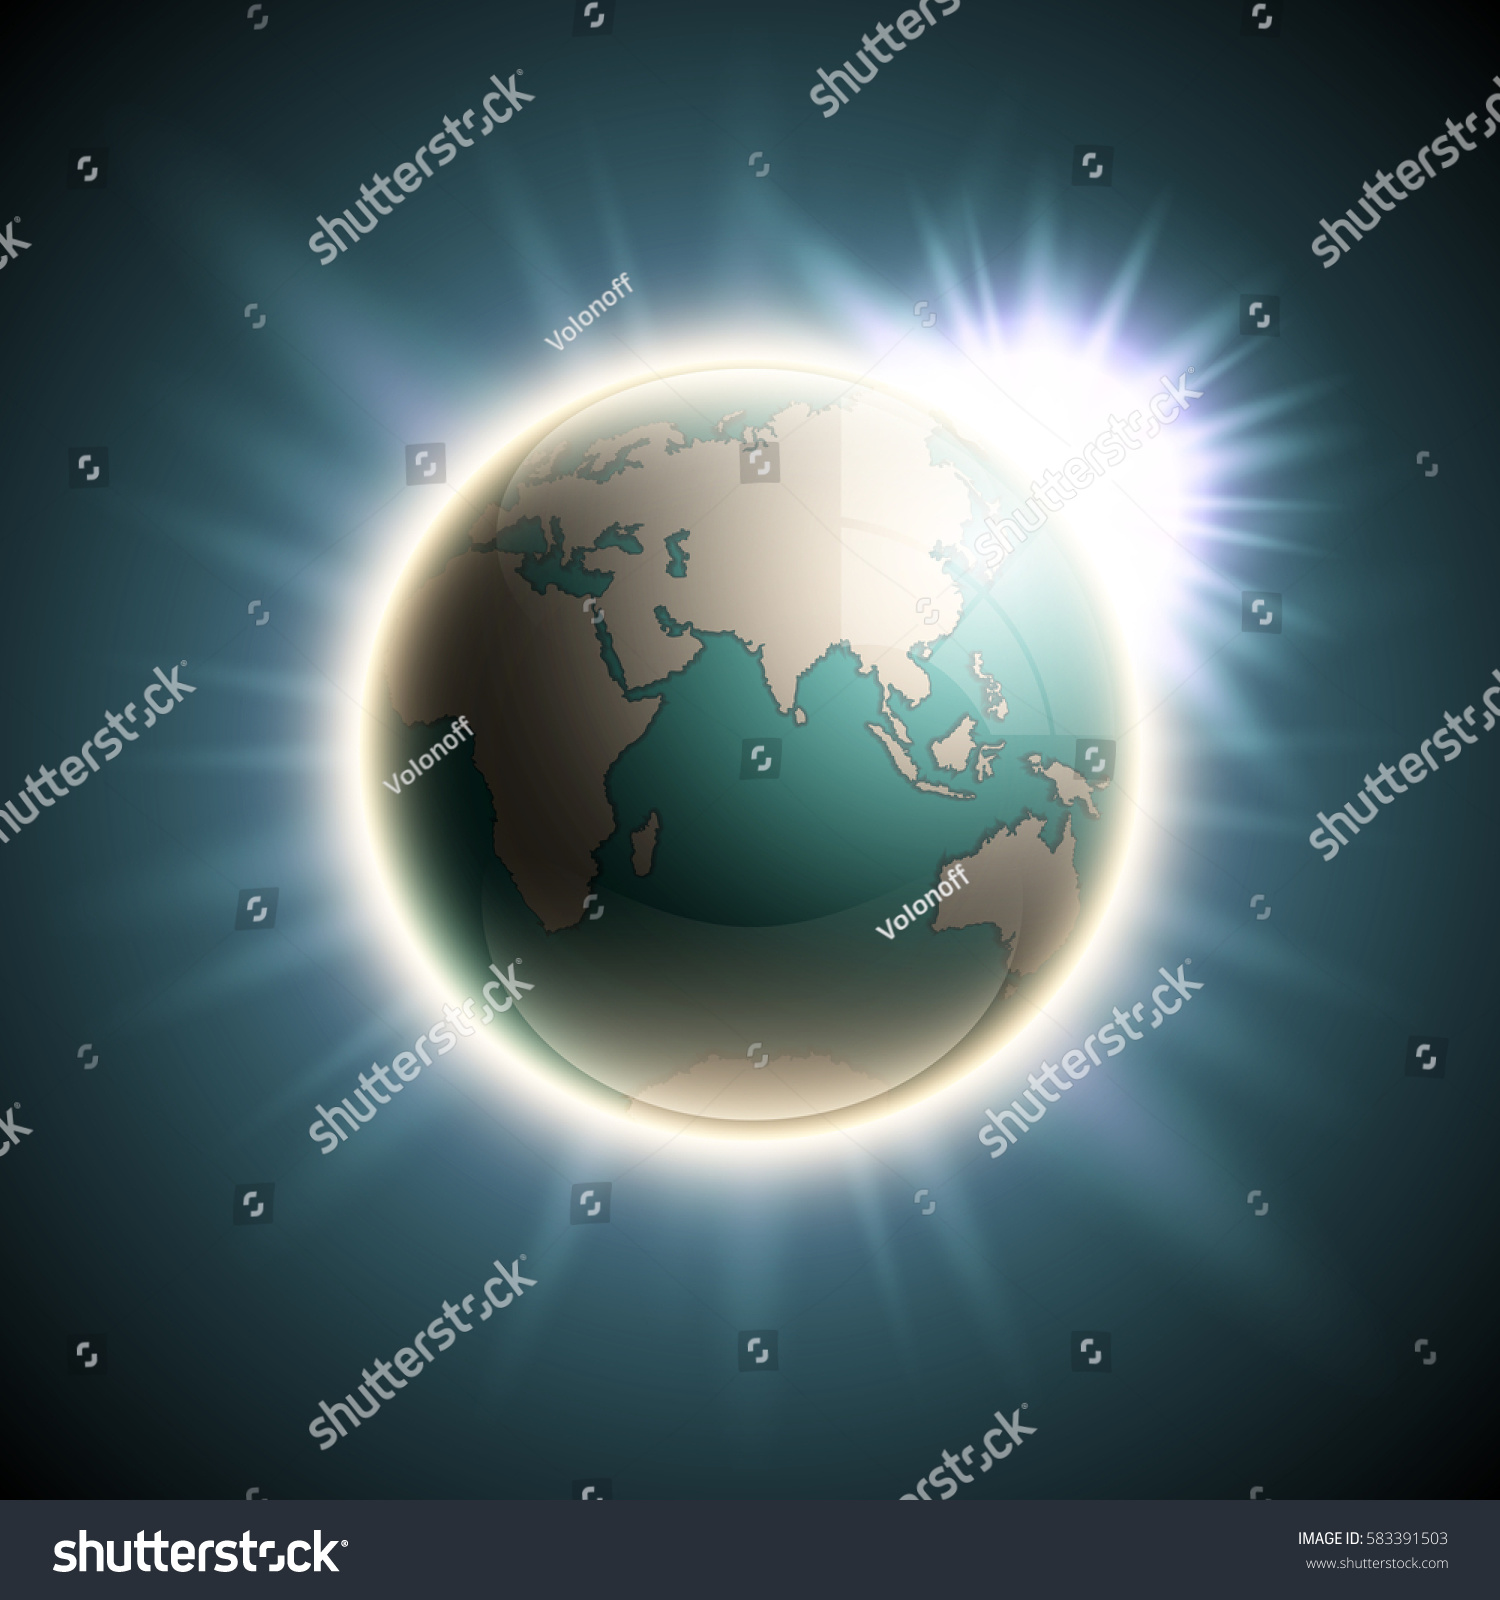 Vector world map rising sun globe stock photo photo vector vector world map with the rising sun globe icon in the space sunlight planet gumiabroncs Images